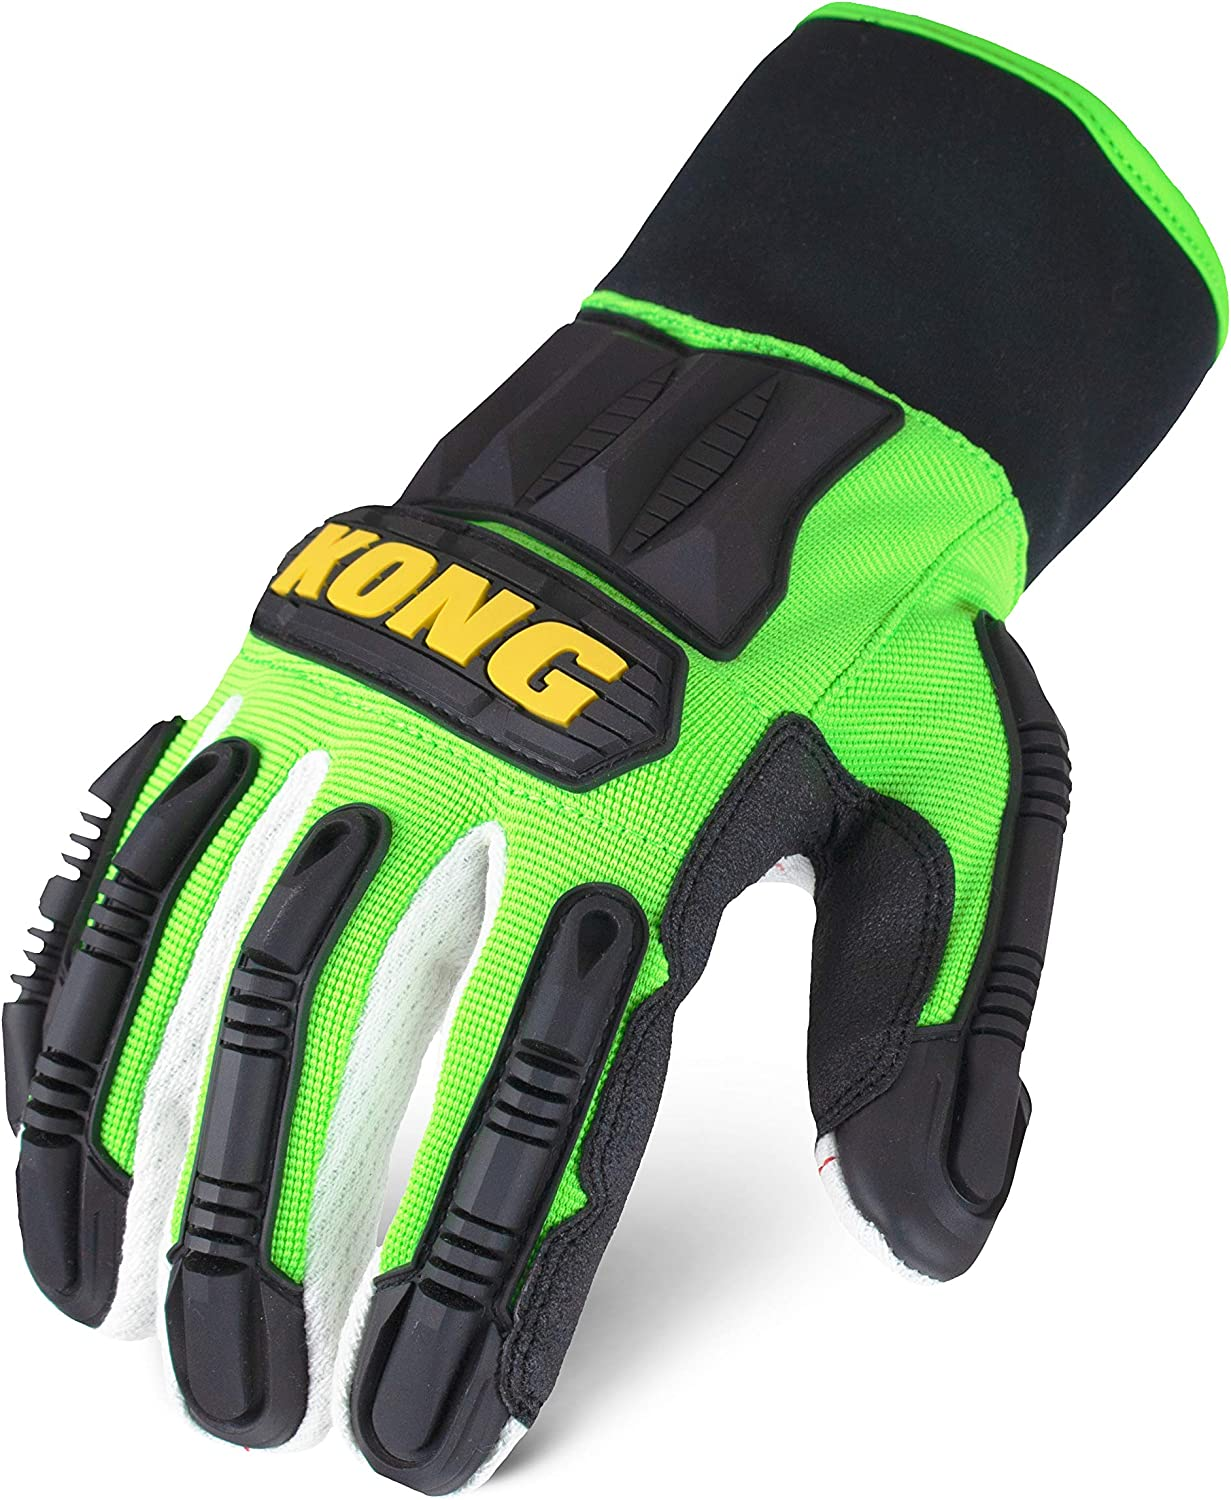 Impact Resistant Max 48% OFF Gloves Choice PR Green L